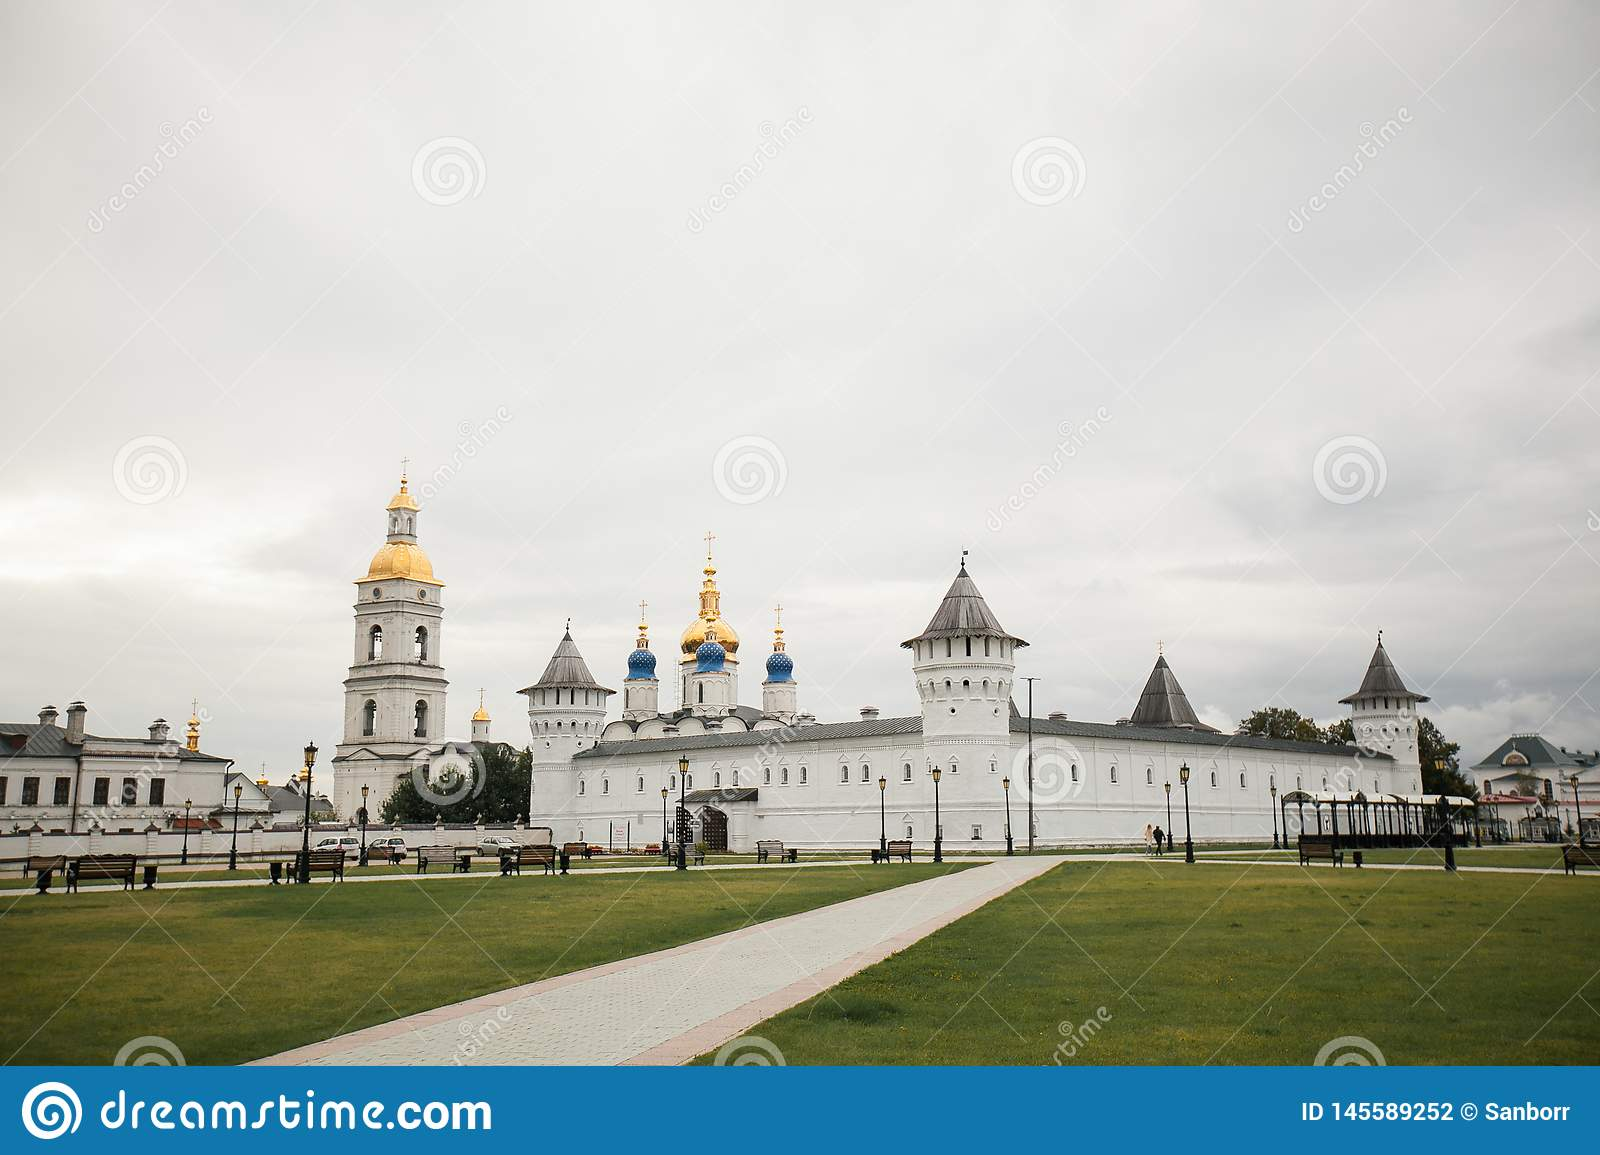 Tobolsk, Russia, 10.09.2016. Christian Church against a blue sky with clouds. The concept of religion and culture